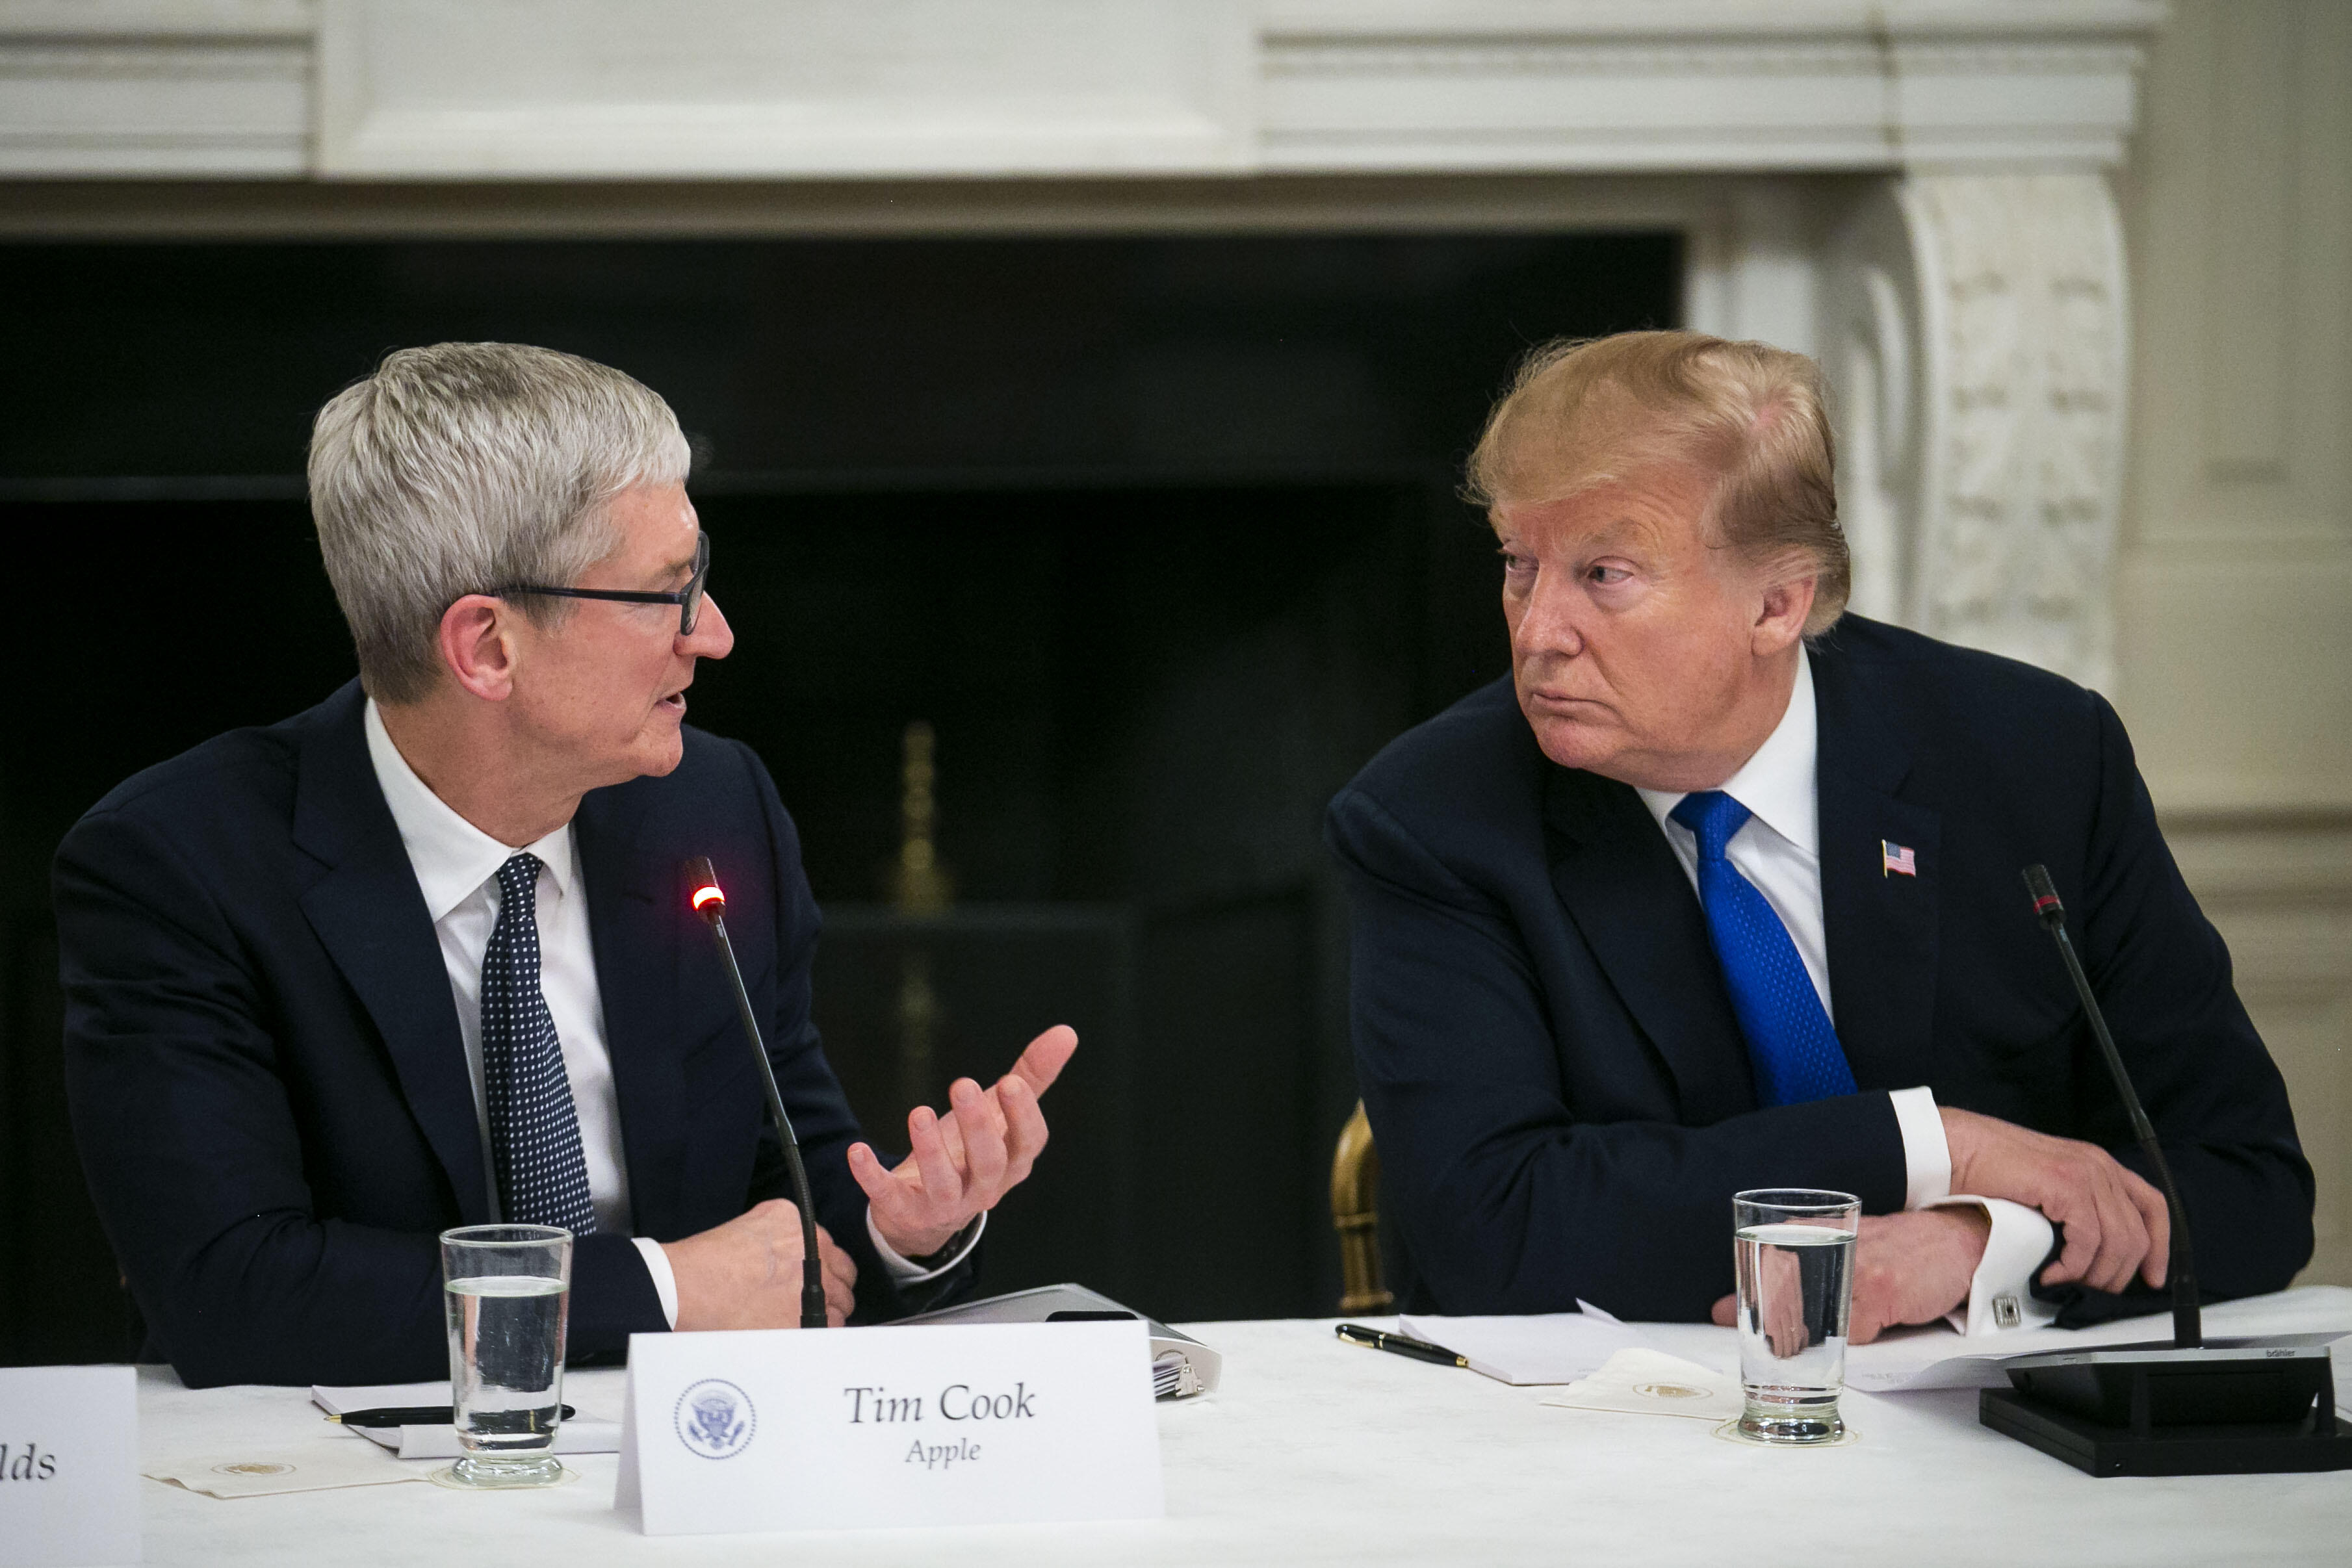 Apple CEO Tim Cook and President Donald Trump in March 2019